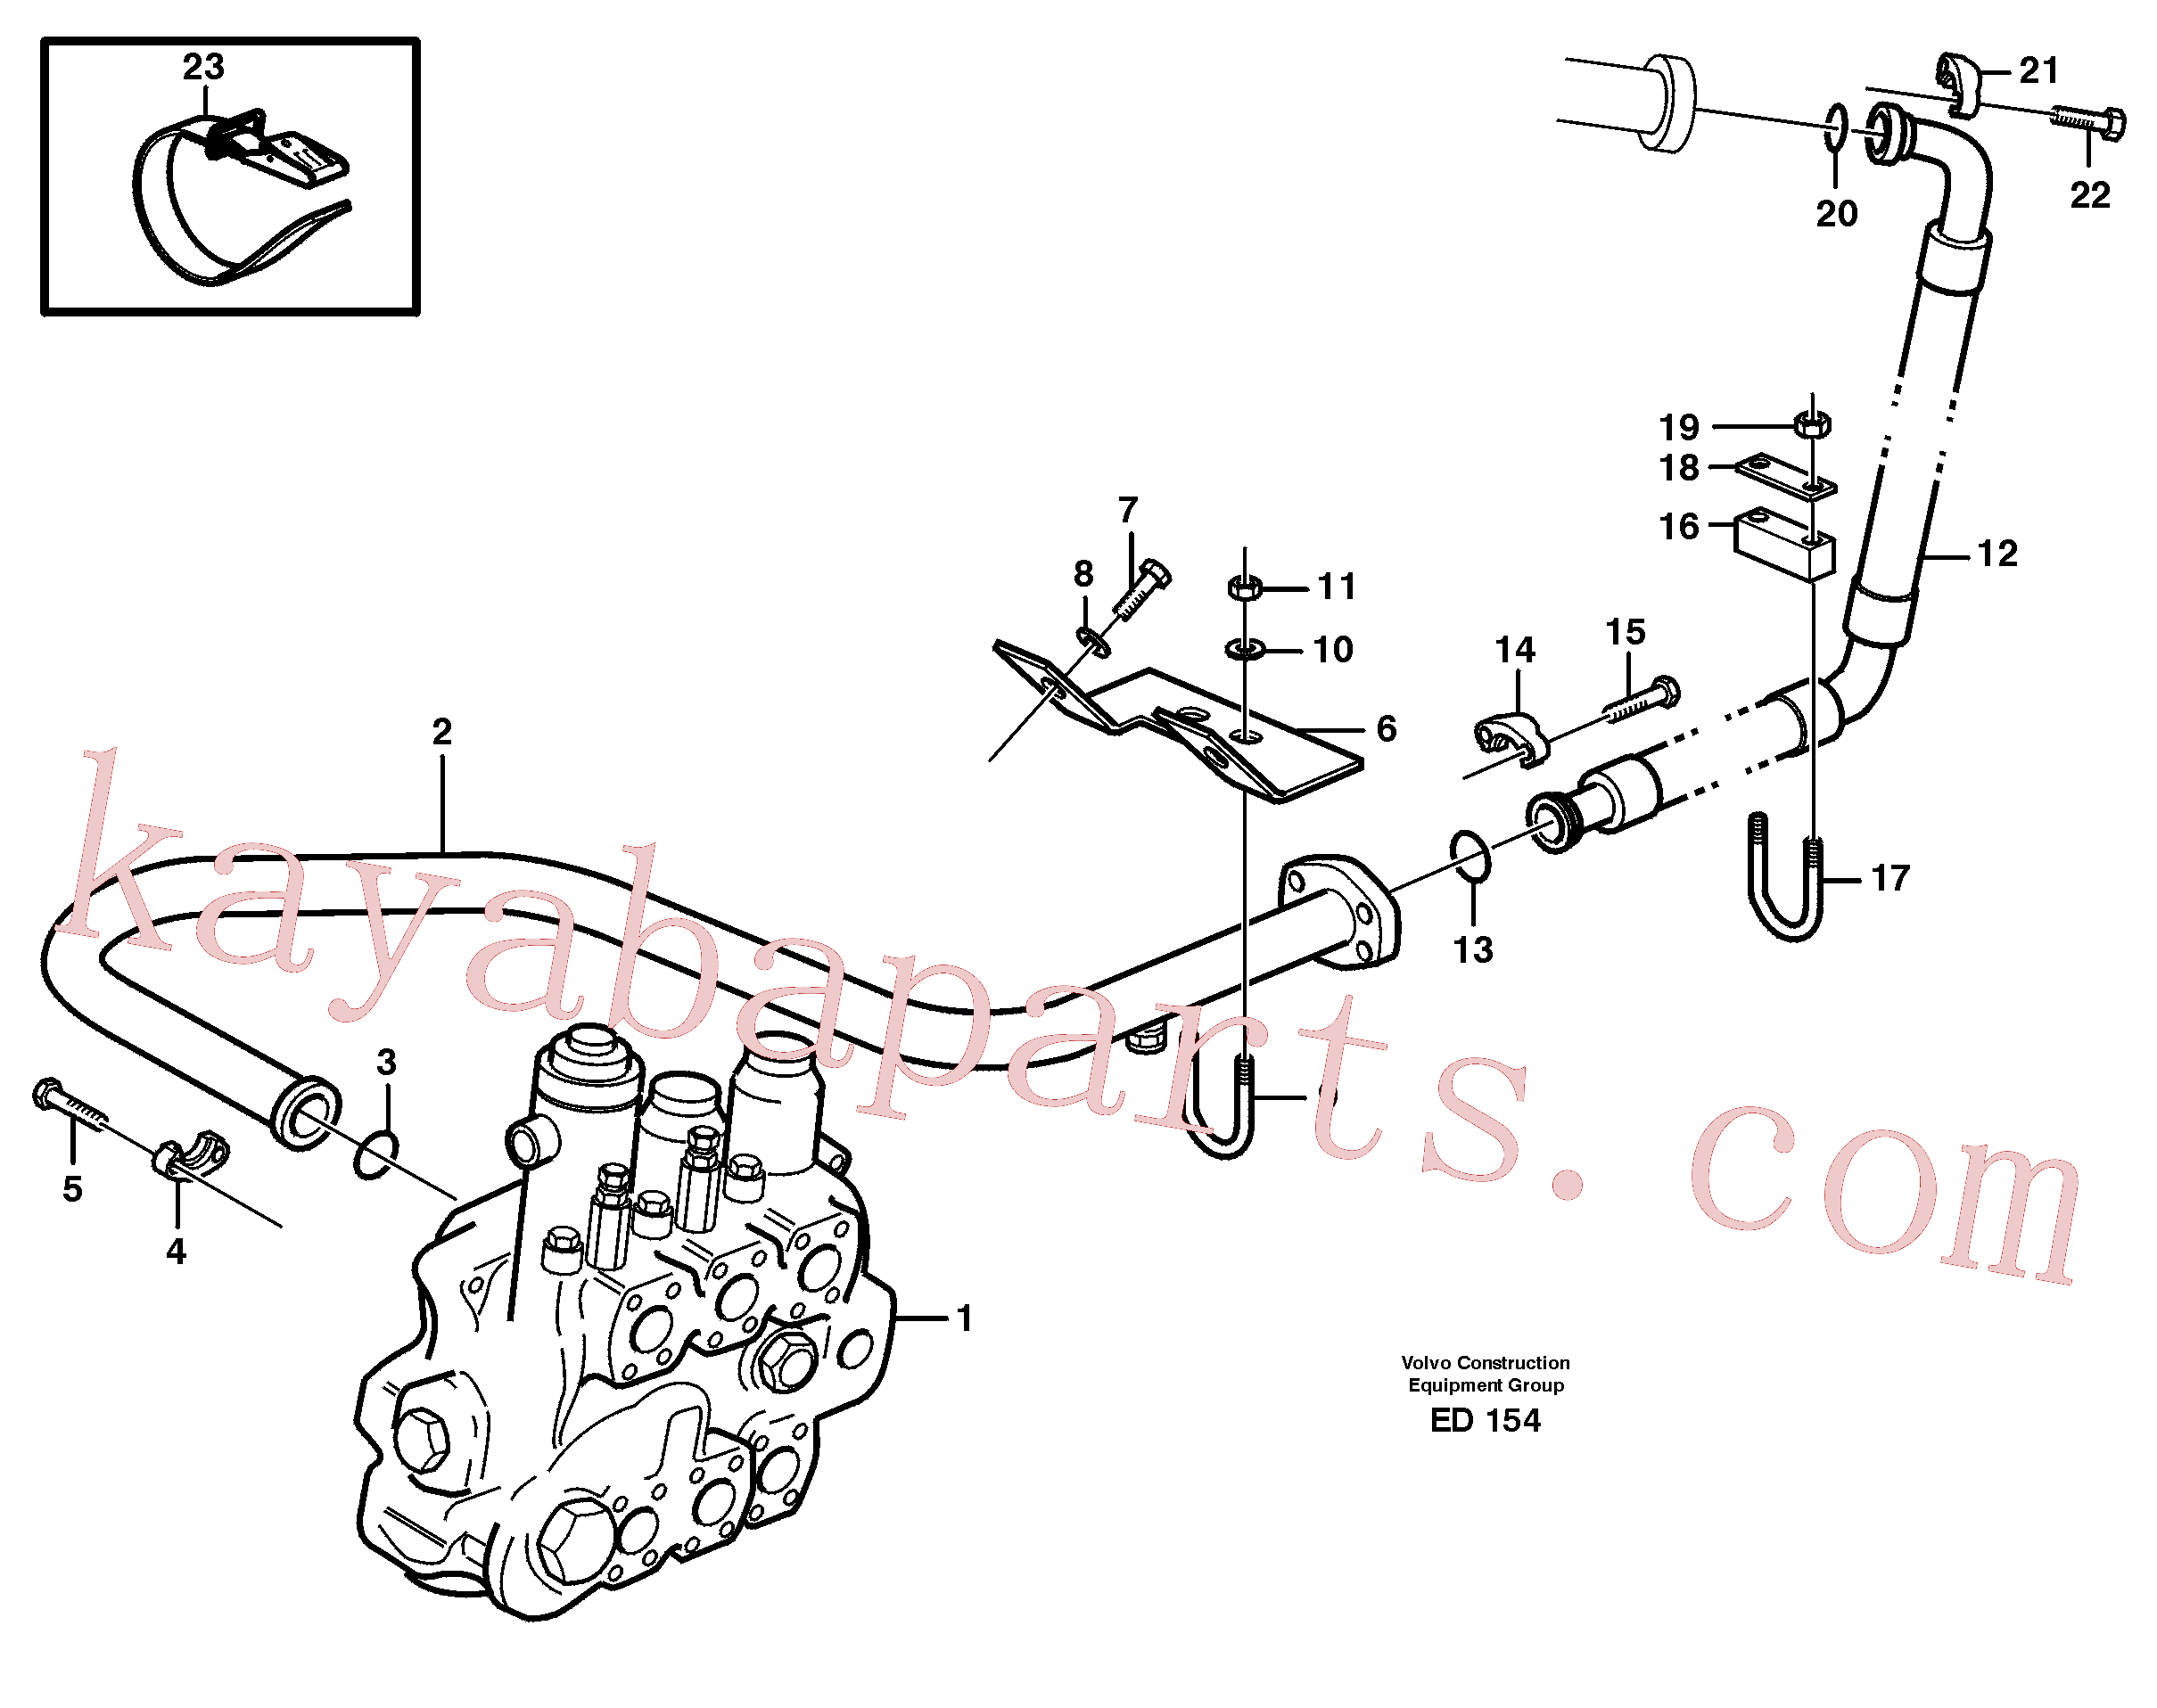 VOE968004 for Volvo Hydraulic system, return line(ED154 assembly)